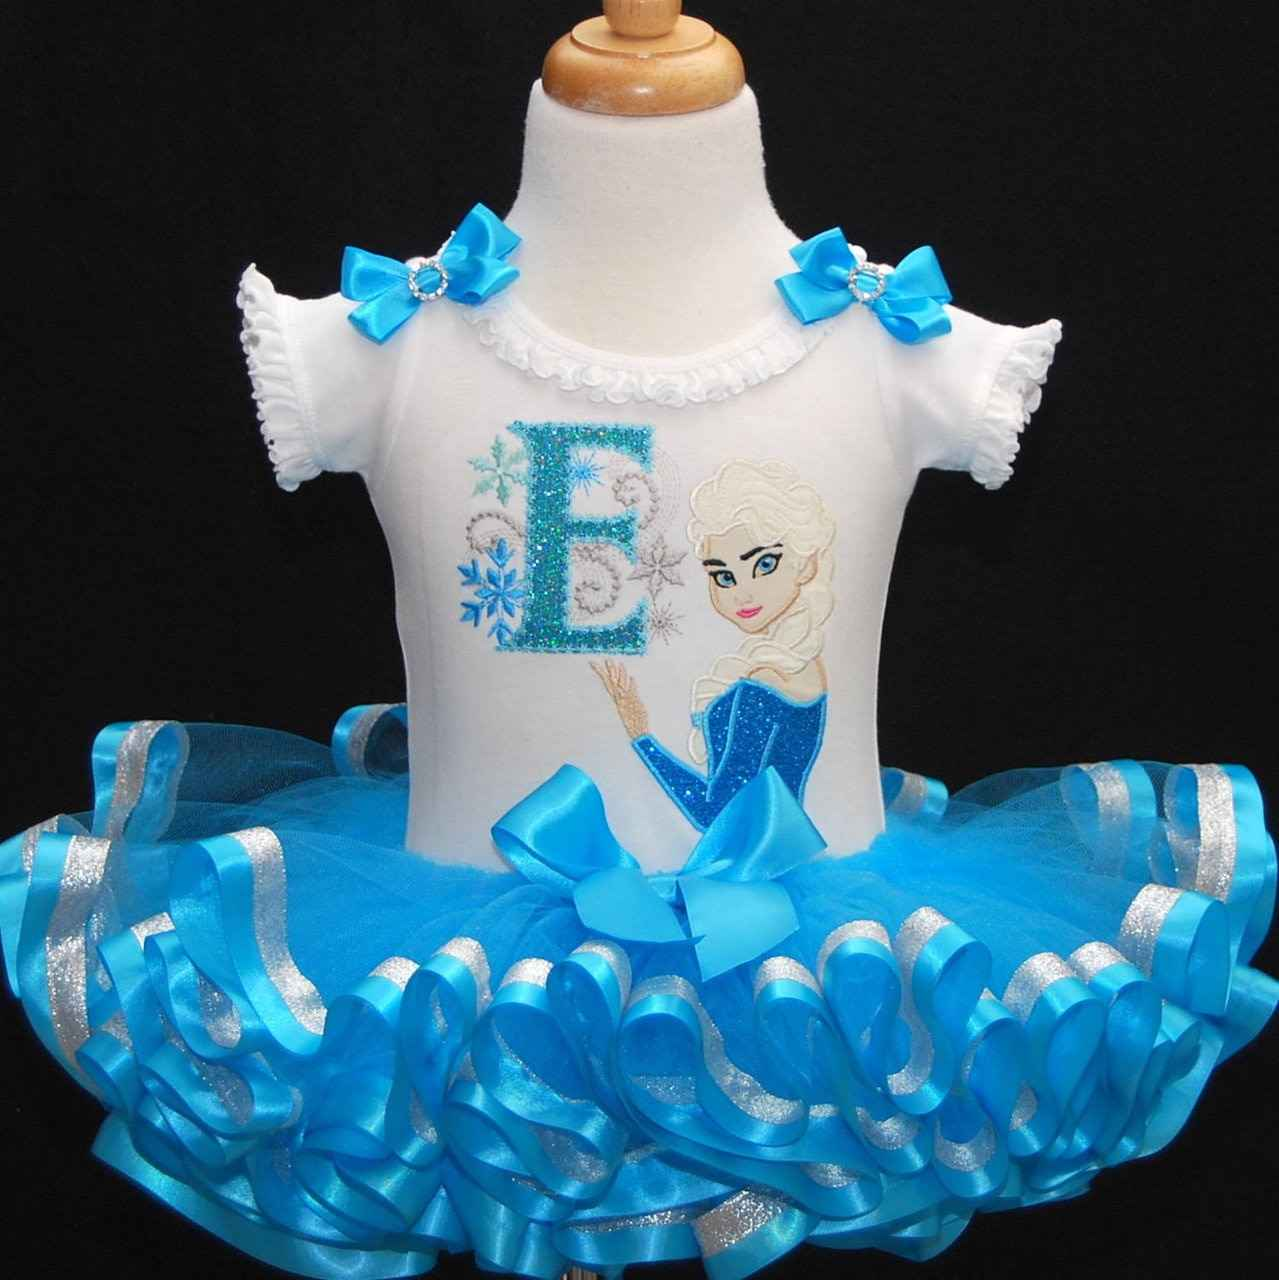 princess birthday outfit, baby tutu dress, cake smash outfit, personalized onesie, ribbon trimmed tutu set, Winter wonderland elsa outfit